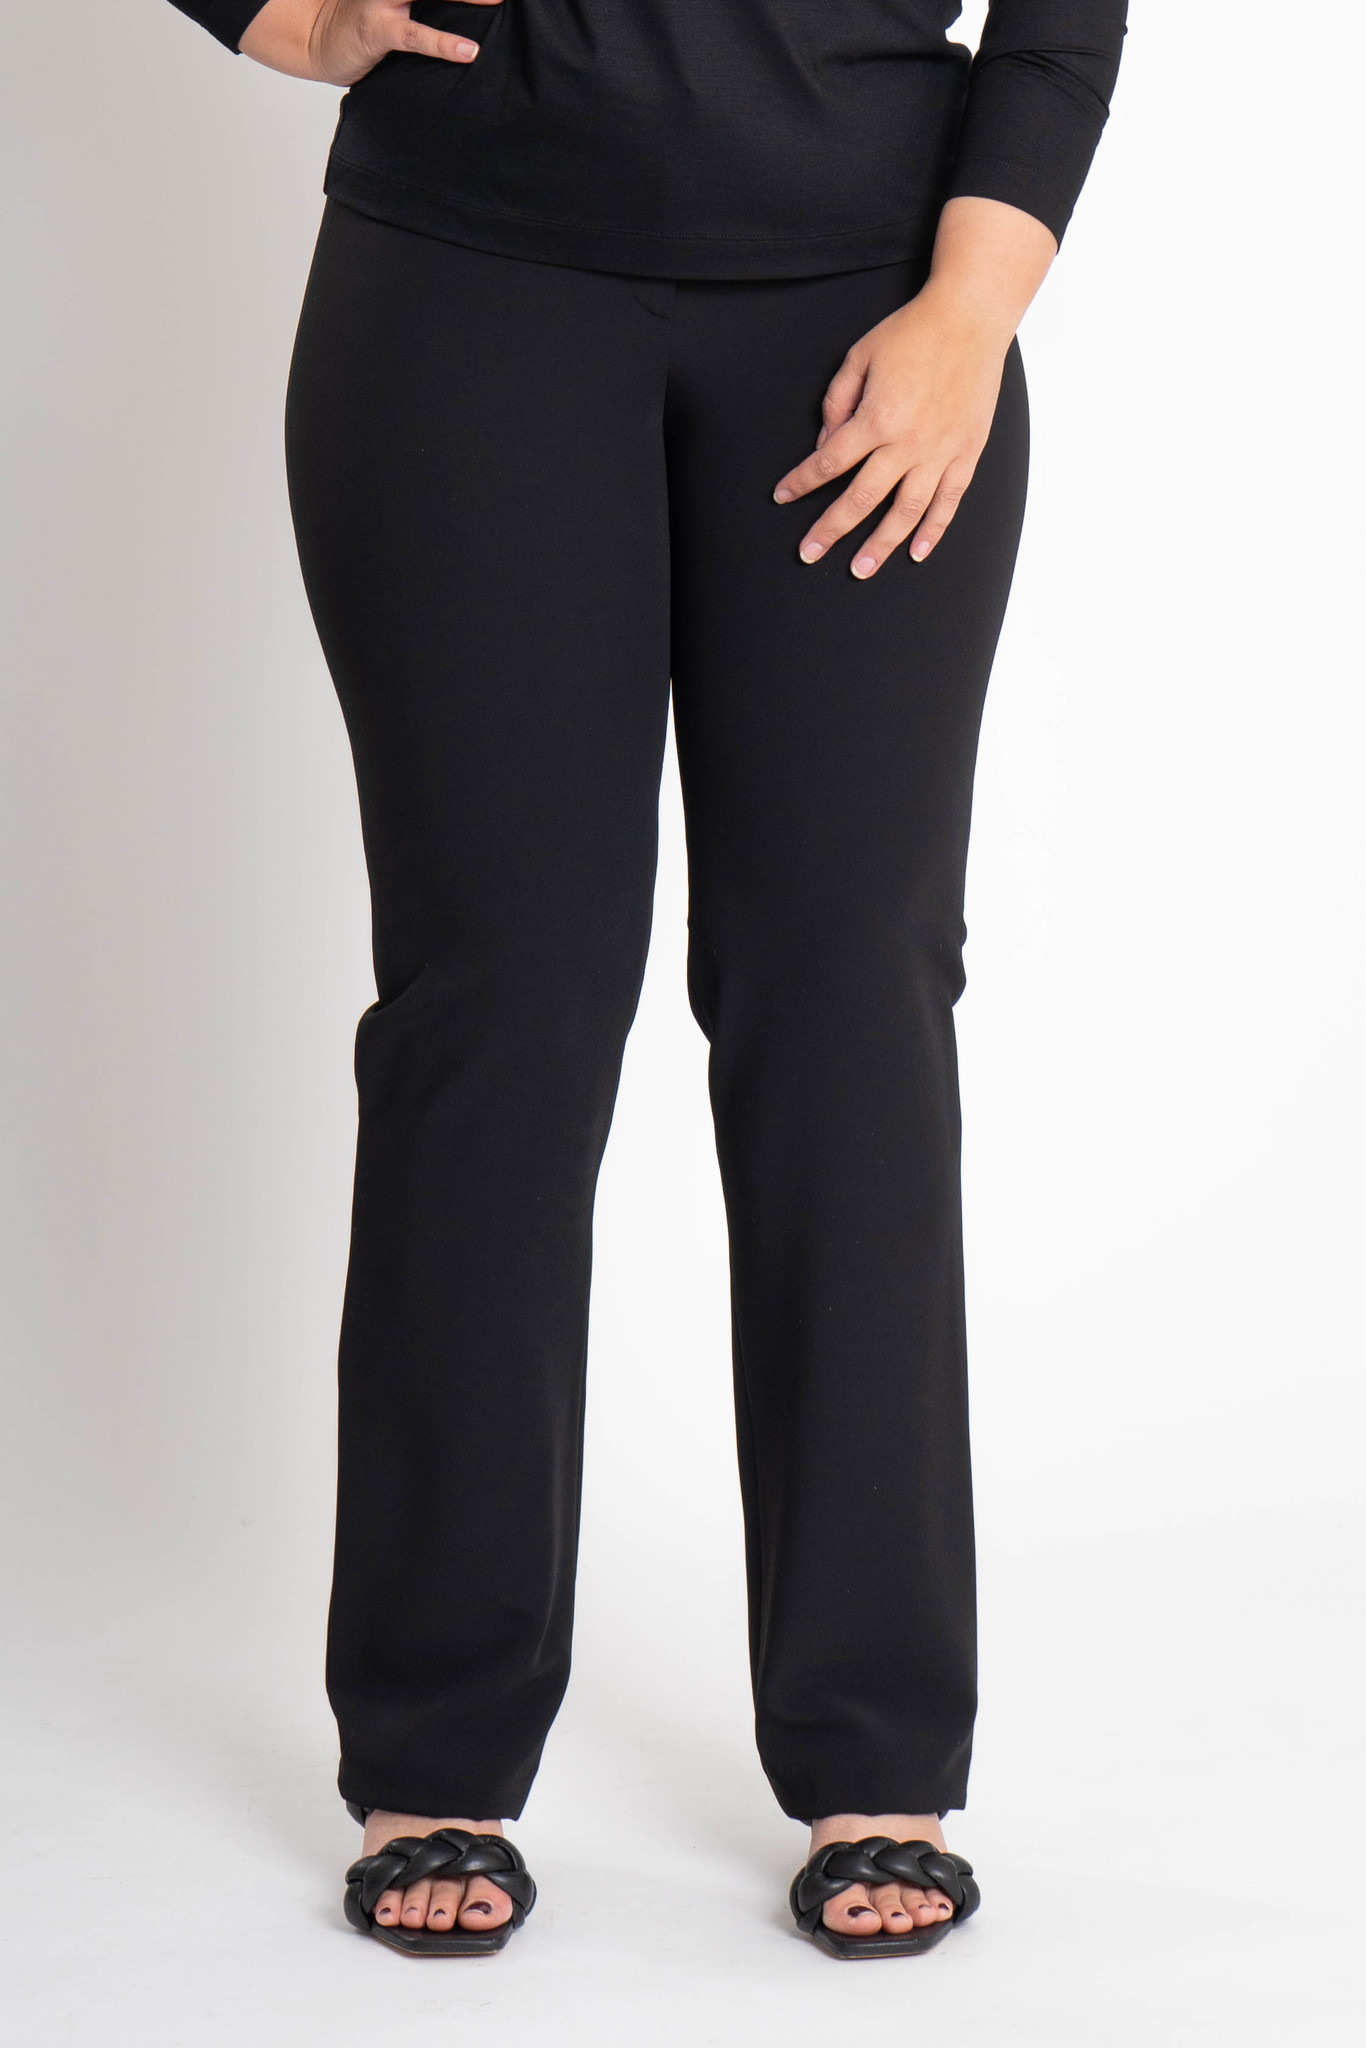 ZWOLF Trousers in Polyester stretch-1